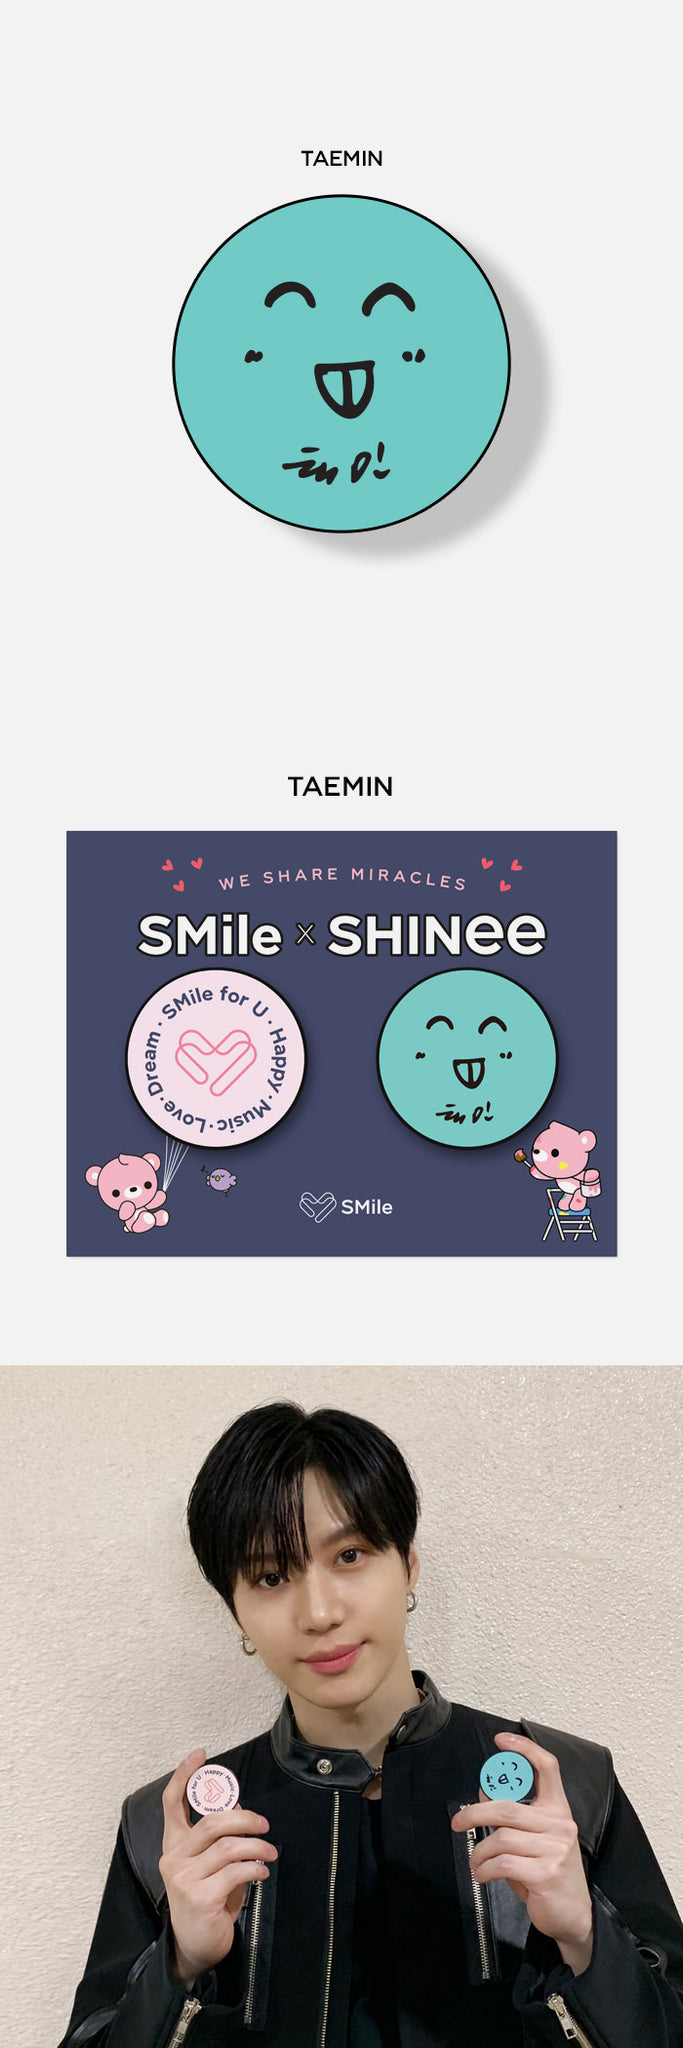 SHINee SMile for U Goods - GRIP TOK